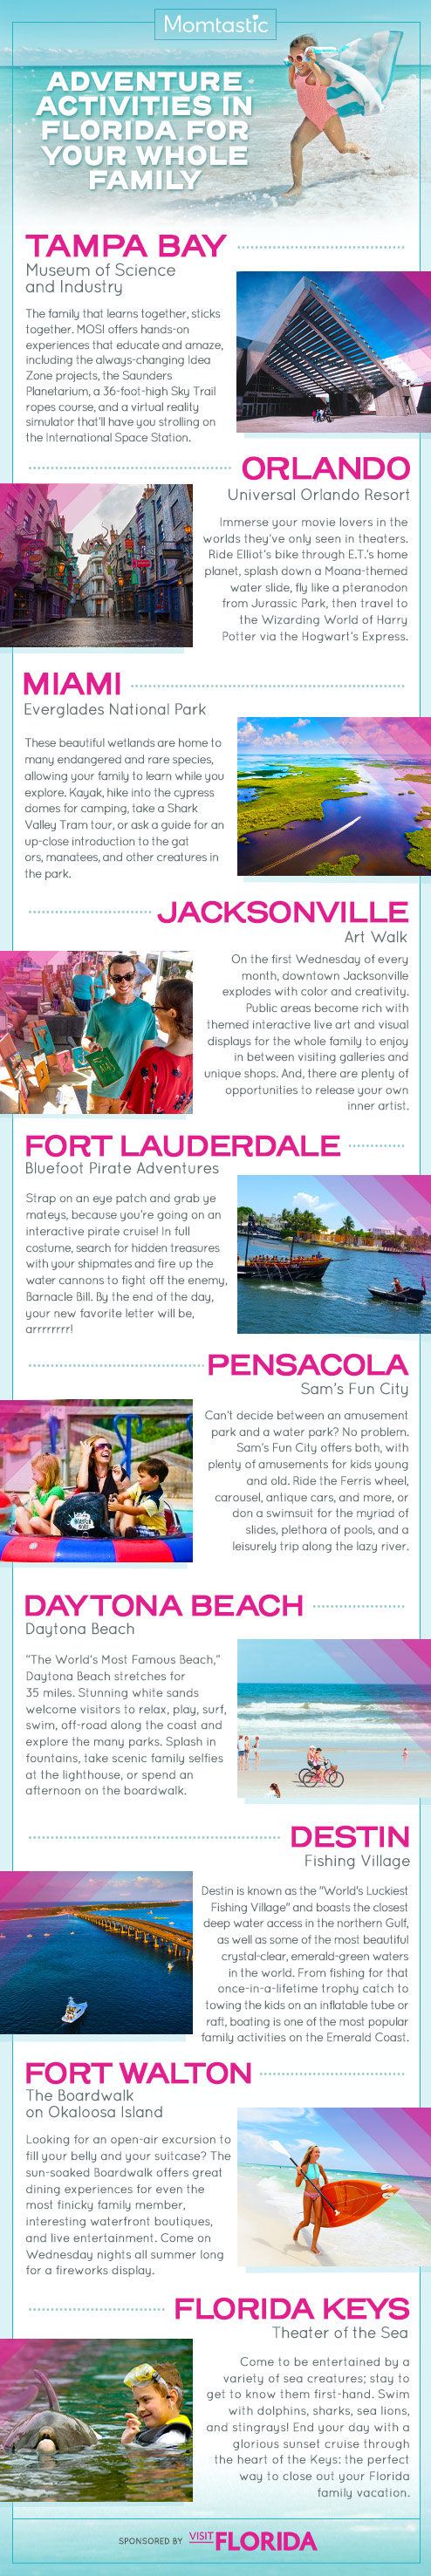 Adventure Activities in Florida for Your Whole Family